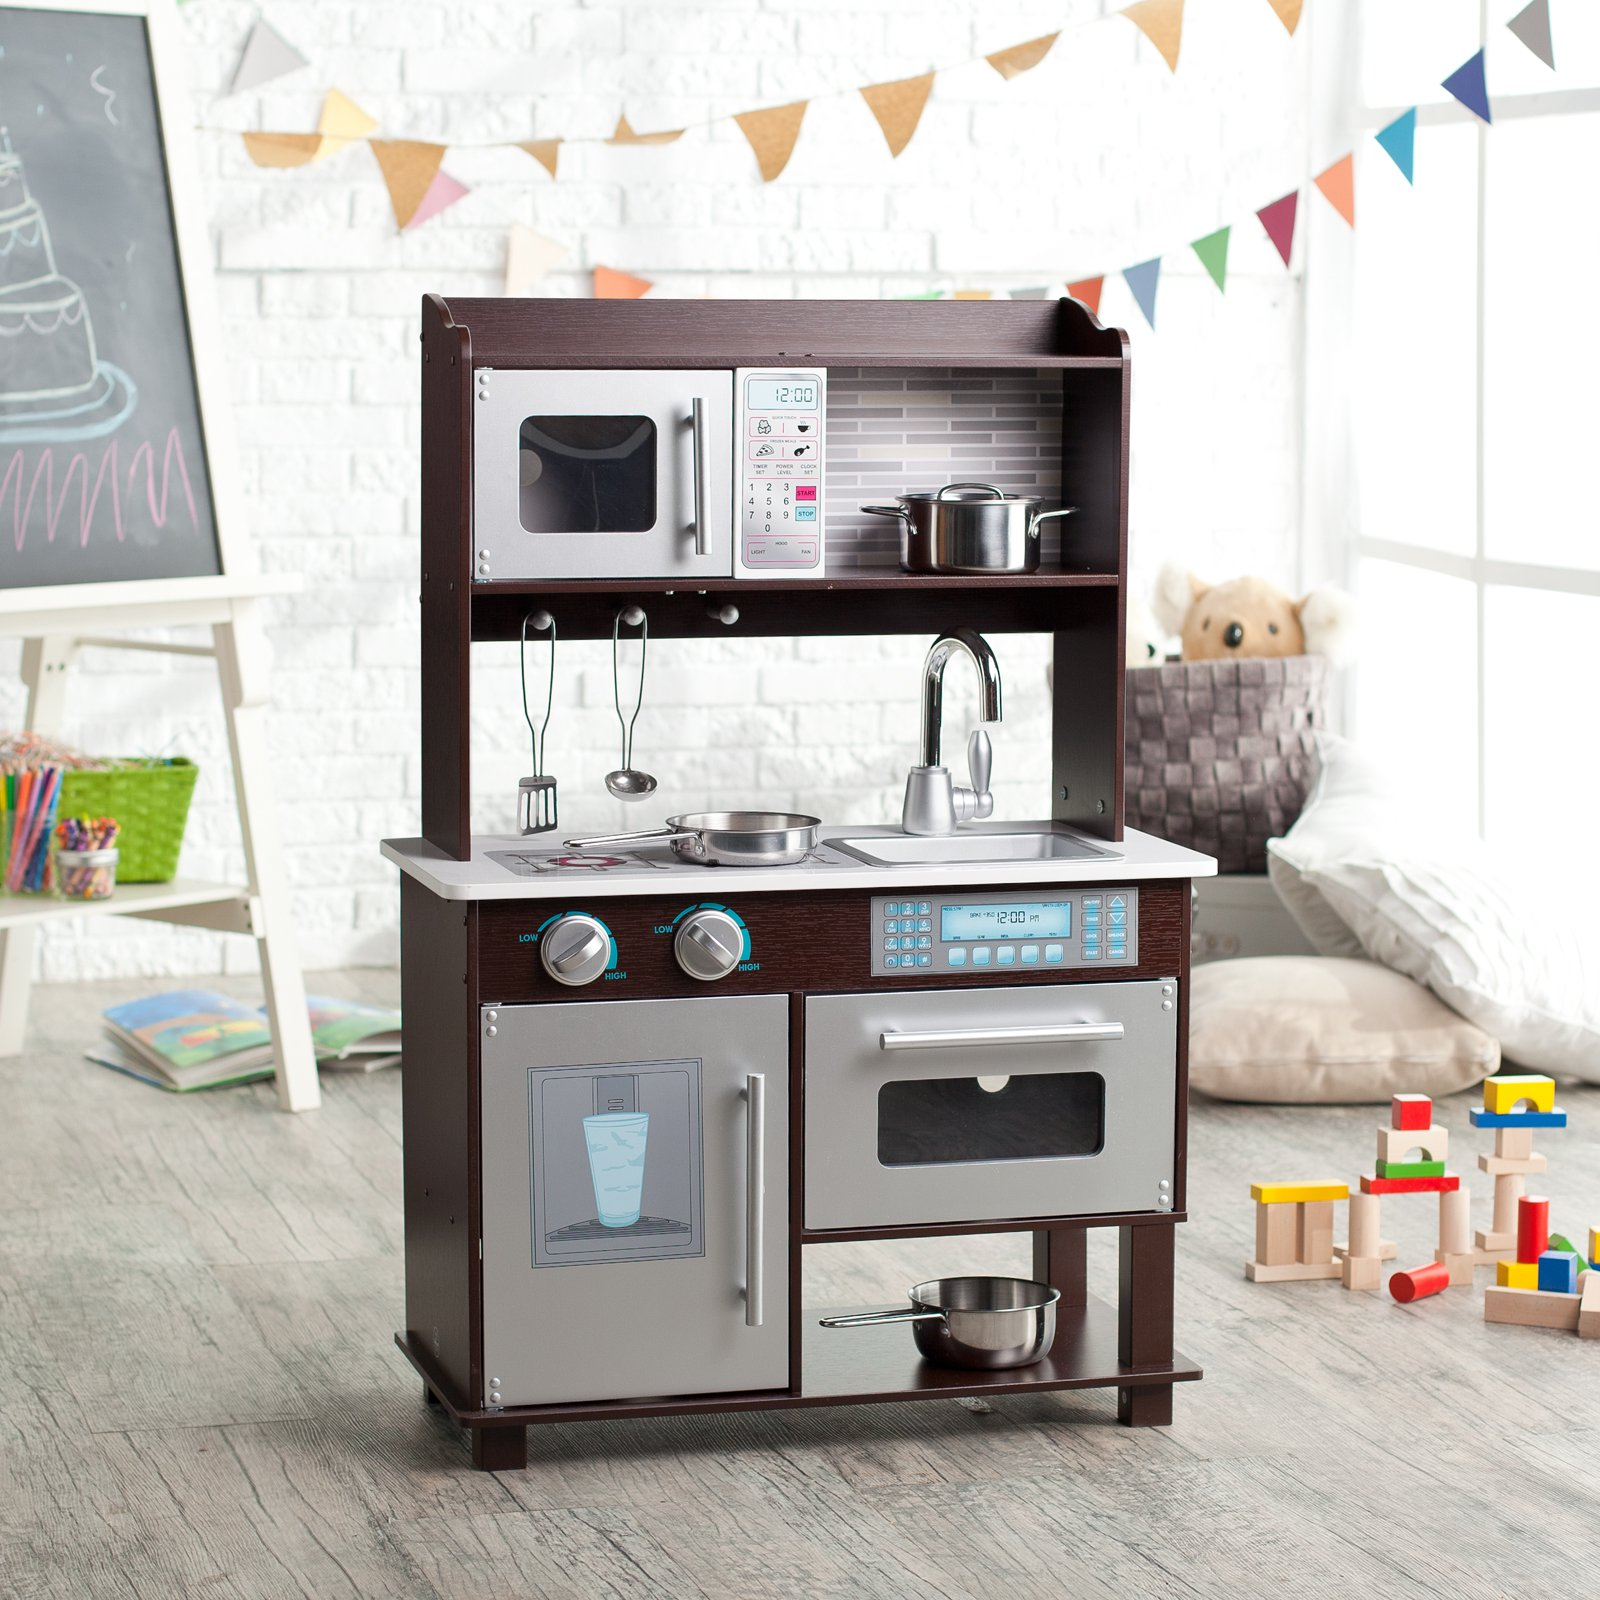 KidKraft Espresso Toddler Play Kitchen With Metal Accessory Set   53281    Walmart.com